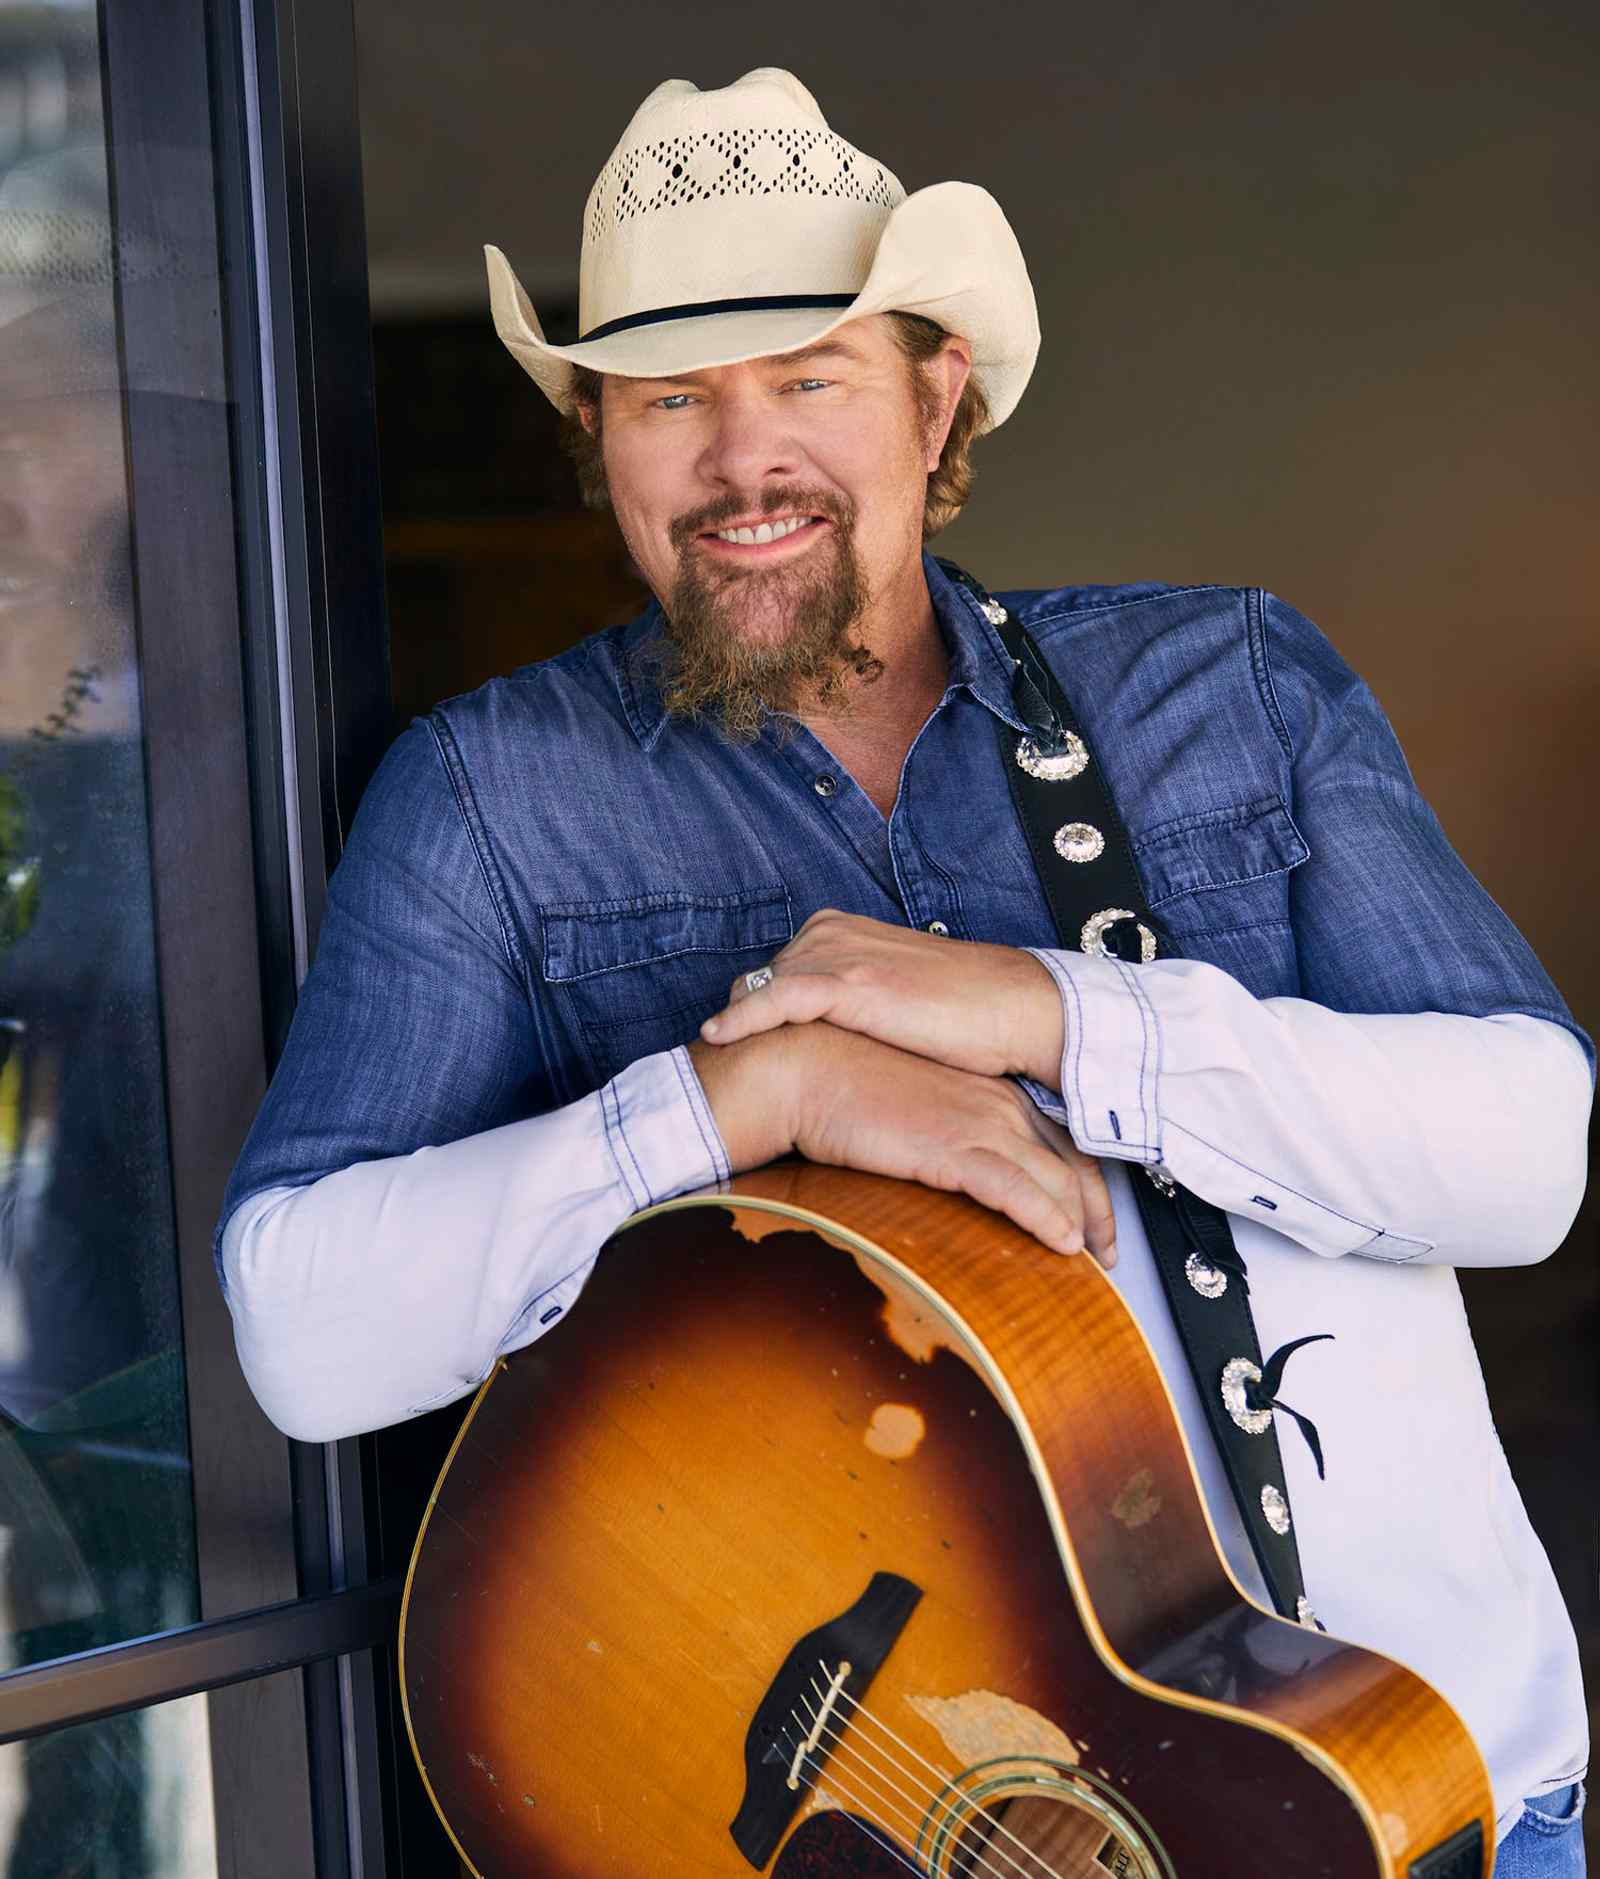 """Toby Keith Brings """"Old School"""" Straight Onto The Charts New Single No. 1 Most Added At Mediabase and Billboard"""